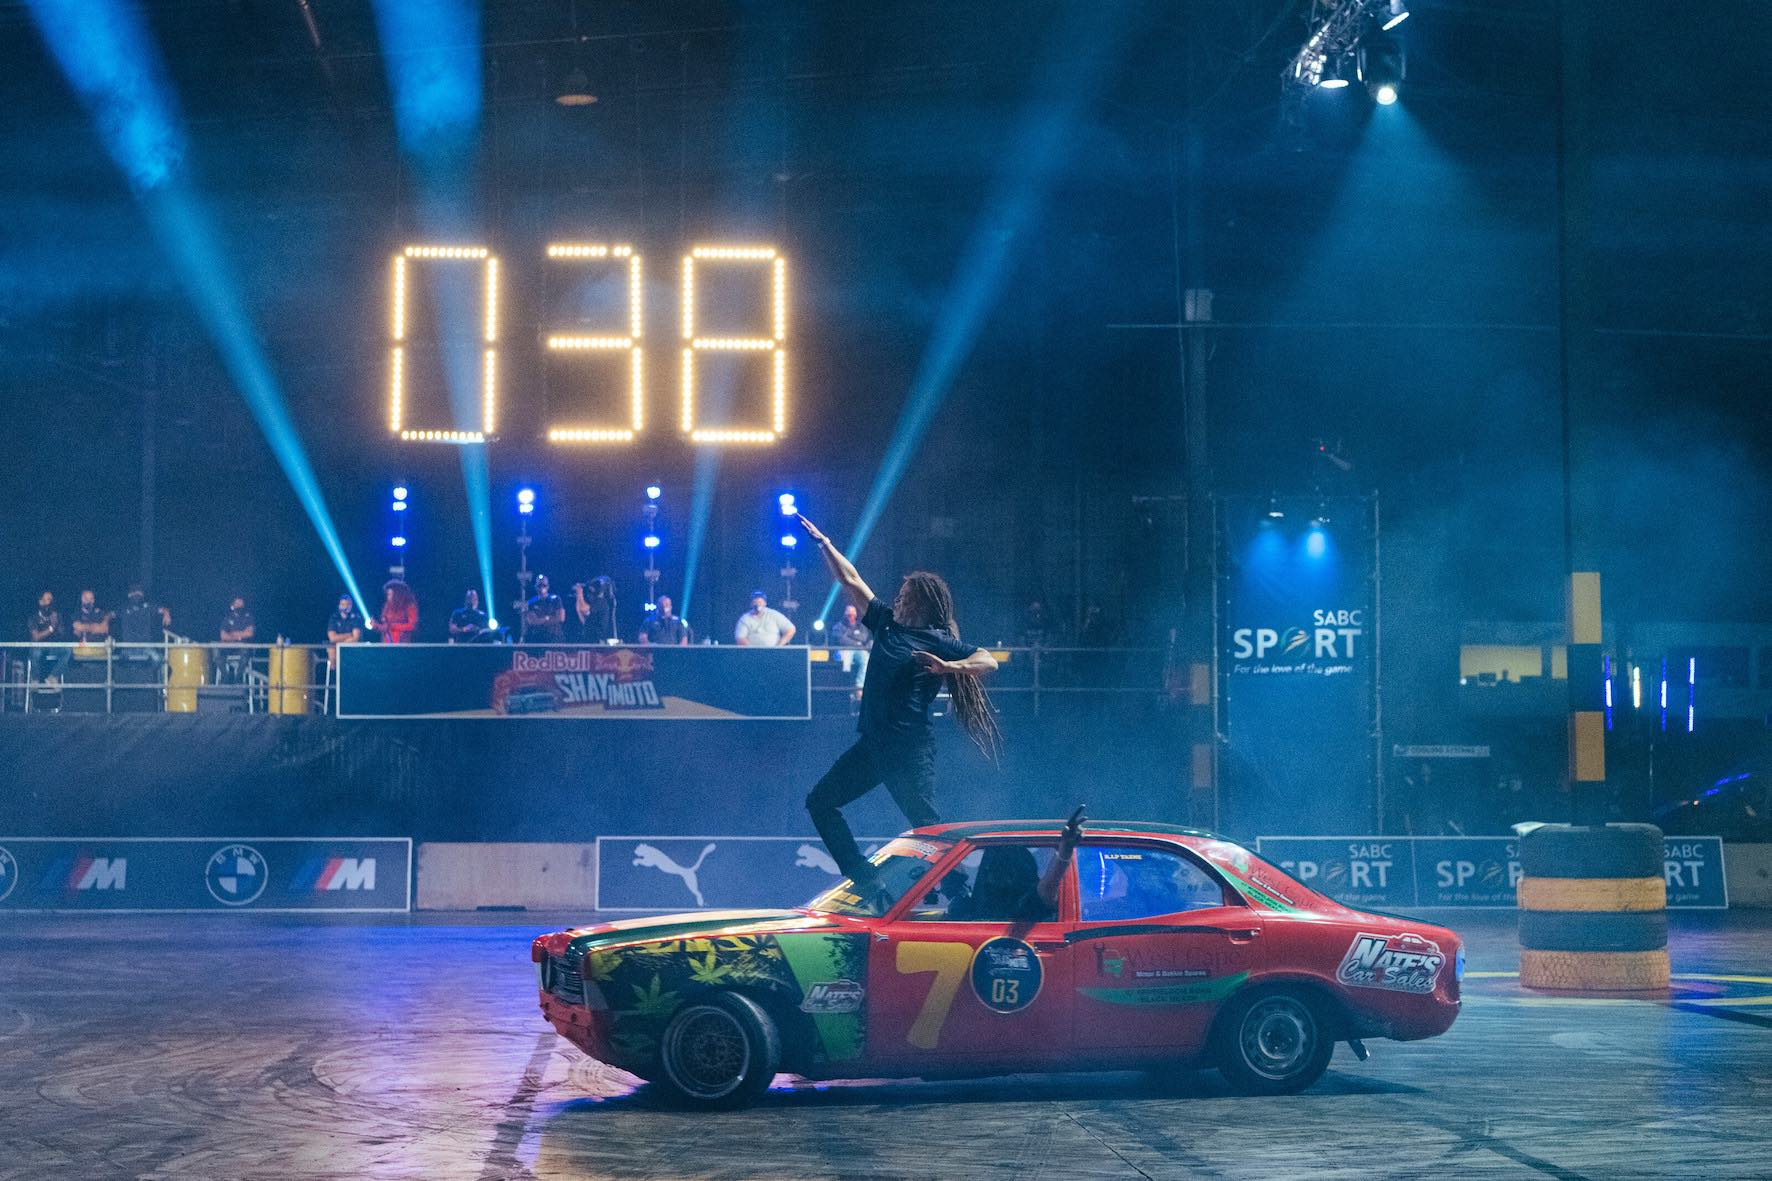 Second place finisher Eddie Rasta performs during Red Bull Shay' iMoto